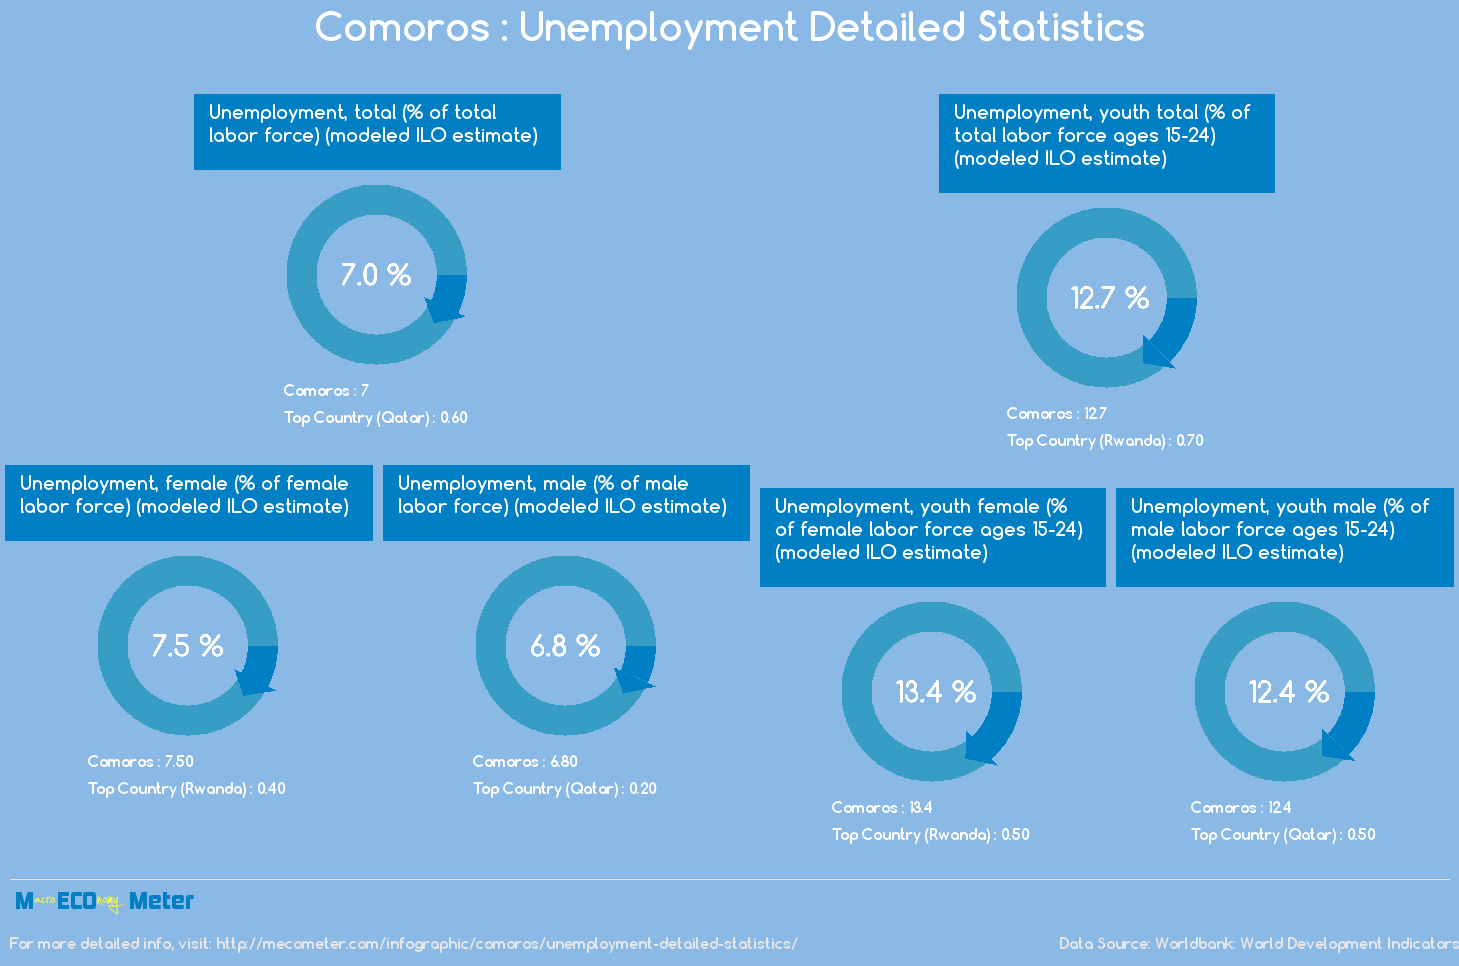 Comoros : Unemployment Detailed Statistics